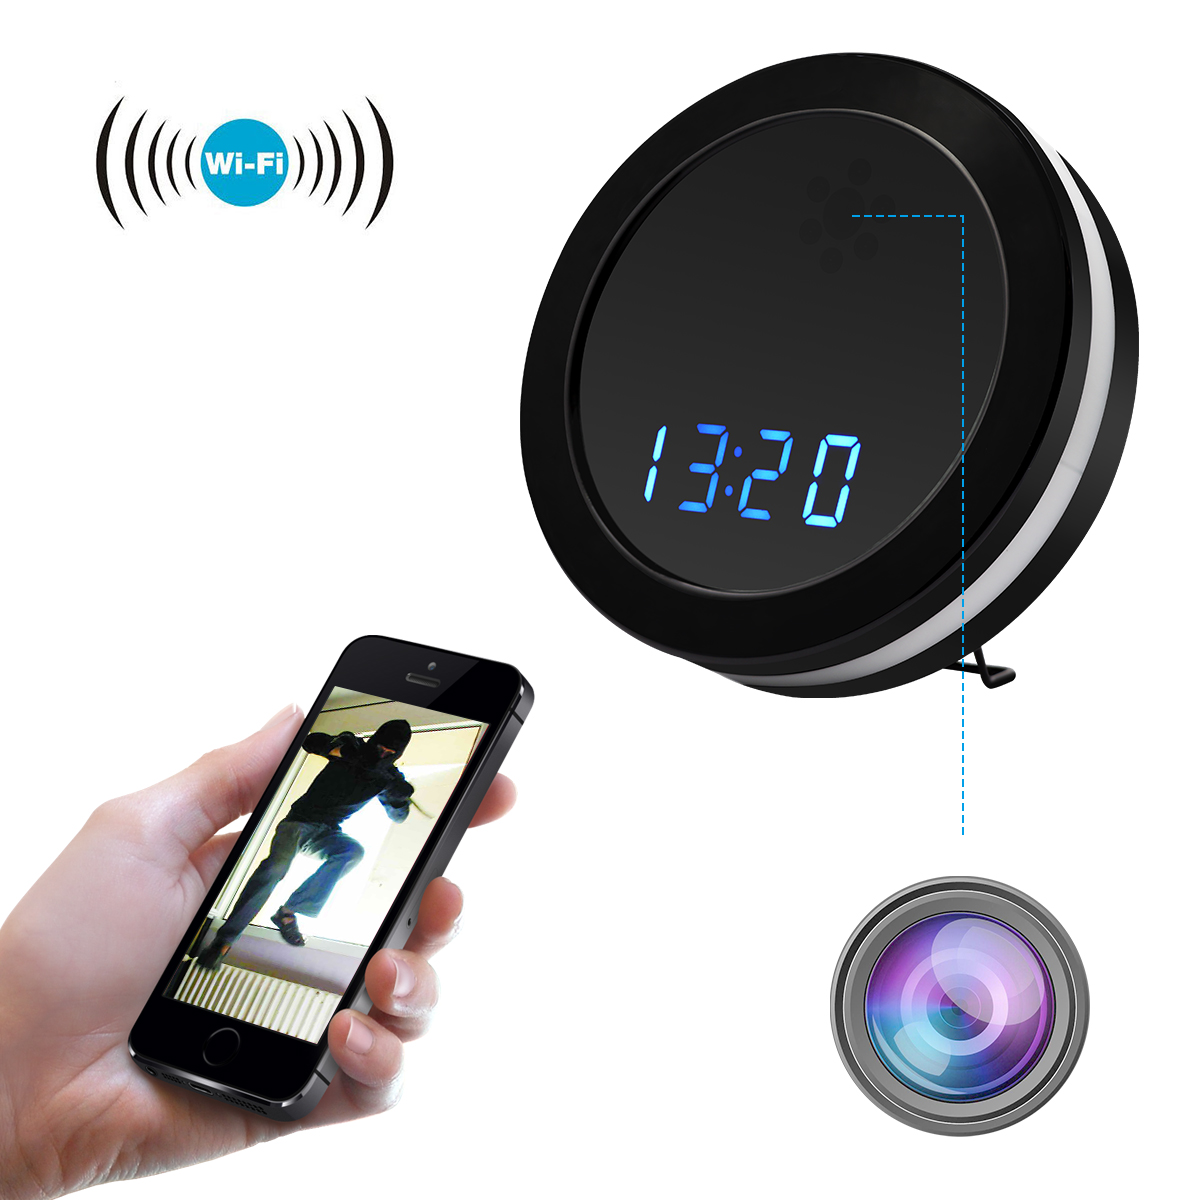 WiFi Camera Table Clock Night Vision Electronic Clock, IP P2P CCTV TV Baby Monitor Home Security Camcorder Wireless Mini Cam hd 720p table alarm clock wireless wifi ip mini ir camera motion security baby monitor with digital clock home dv cam clock